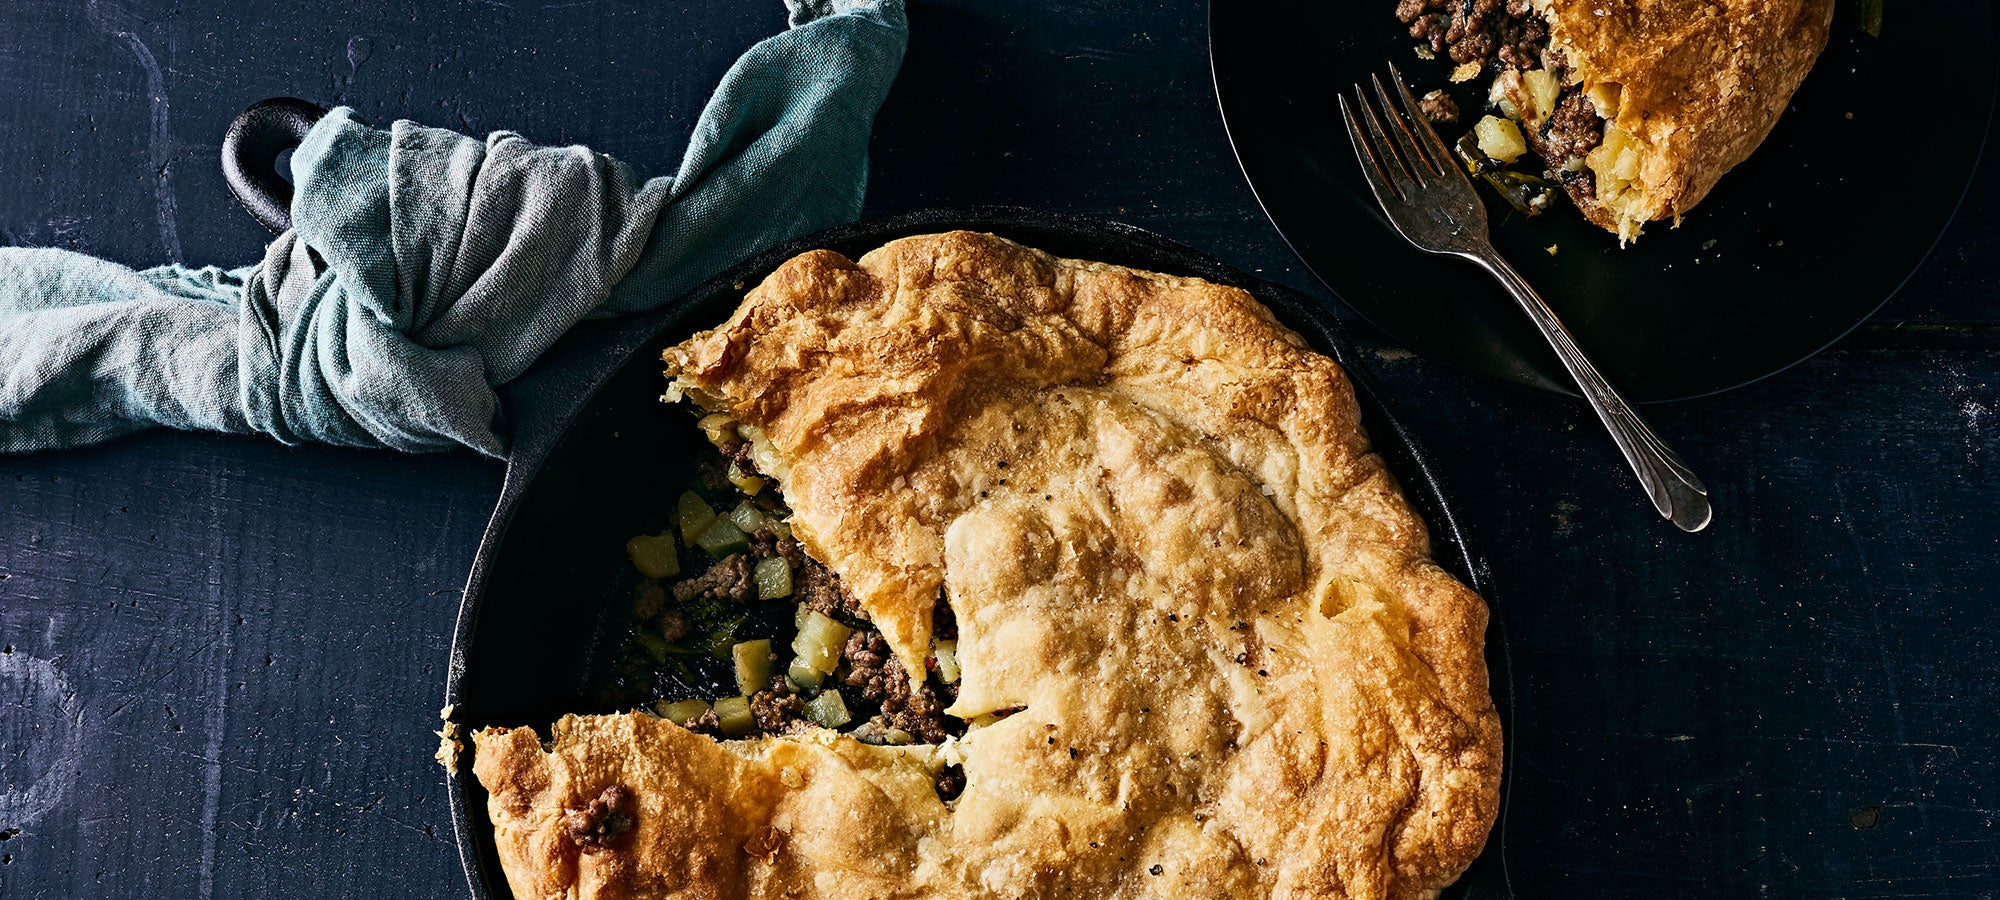 Pie Will Never Be the Same After This Ground Beef and Cheese Version